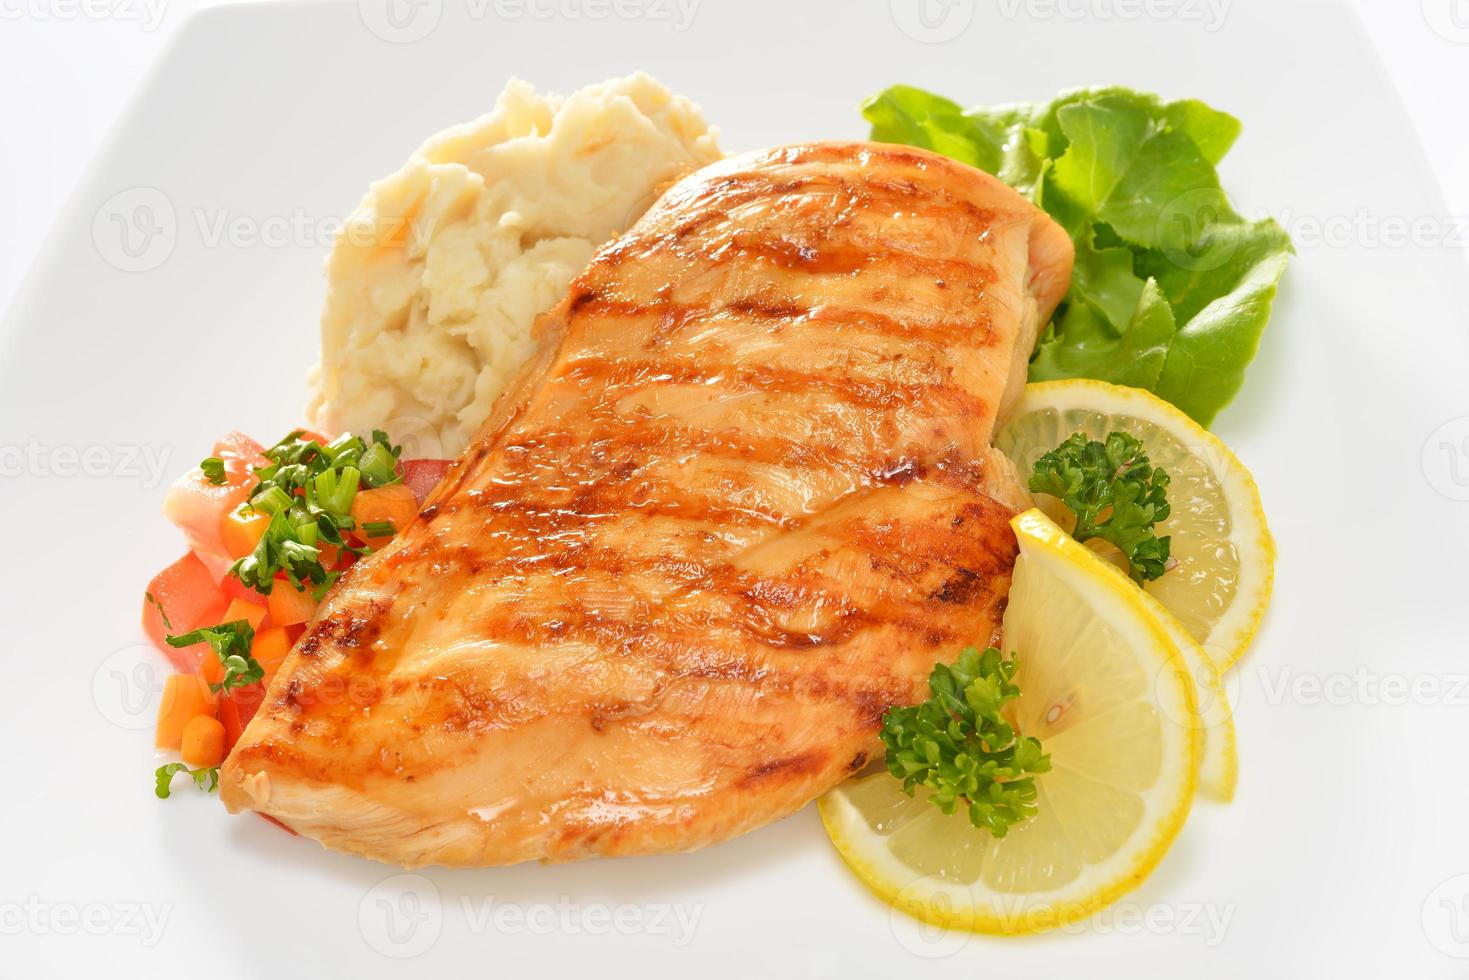 Grilled chicken on plate with mashed potatoes and lemon photo